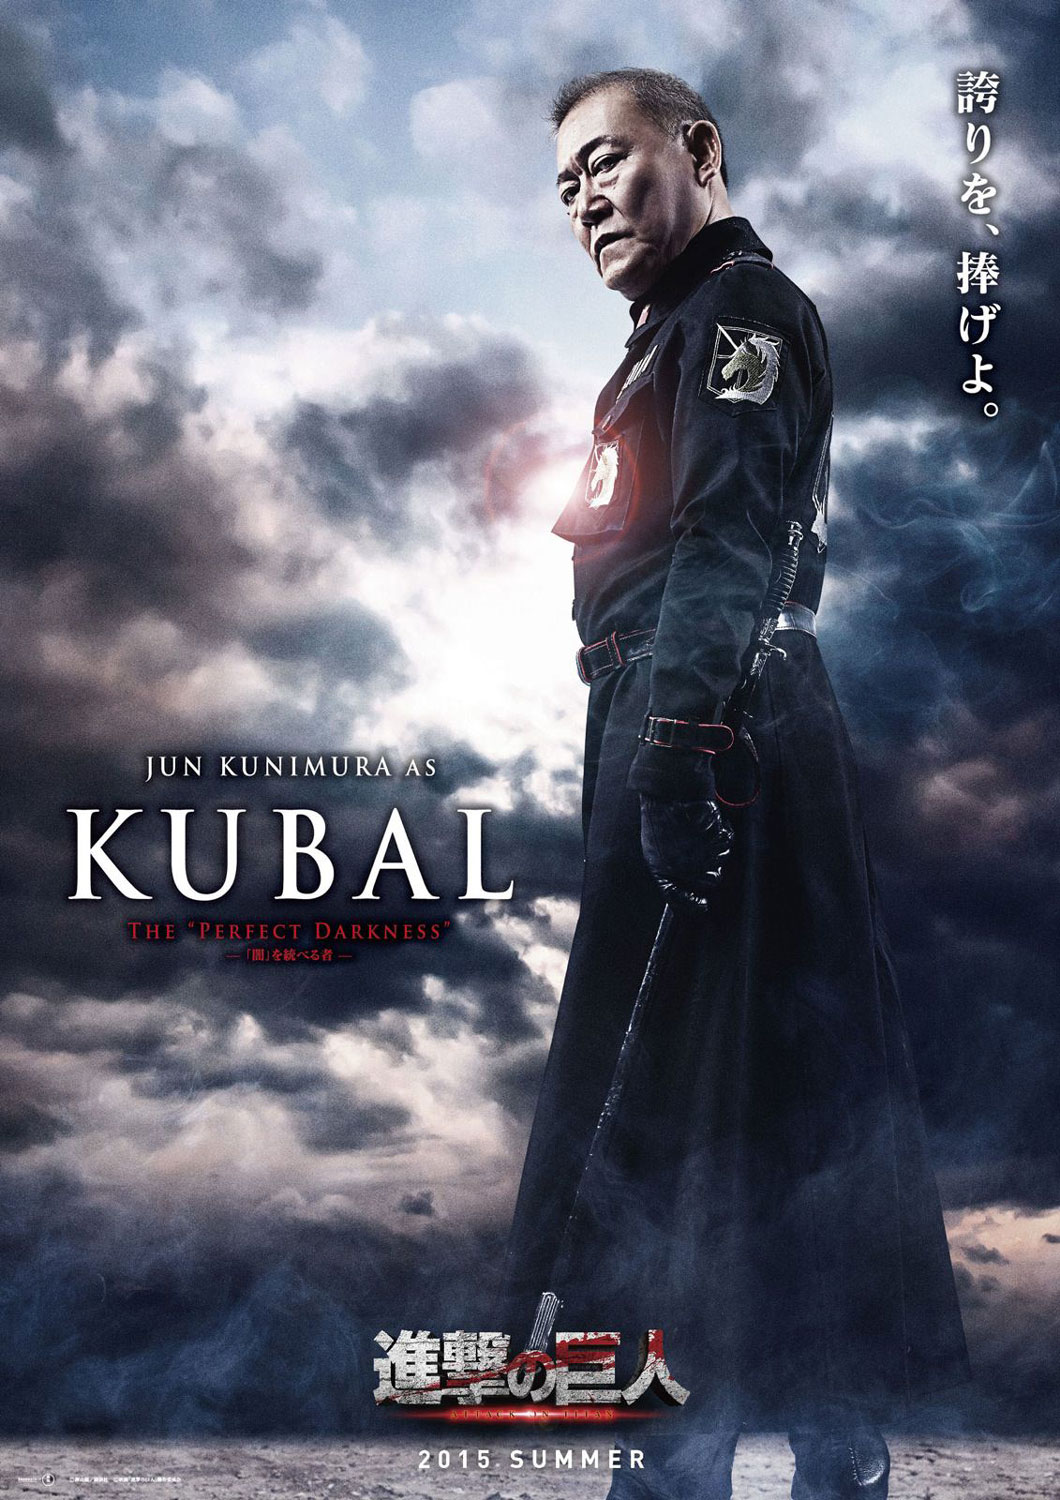 Jun Kunimura Attack on Titan Kubal